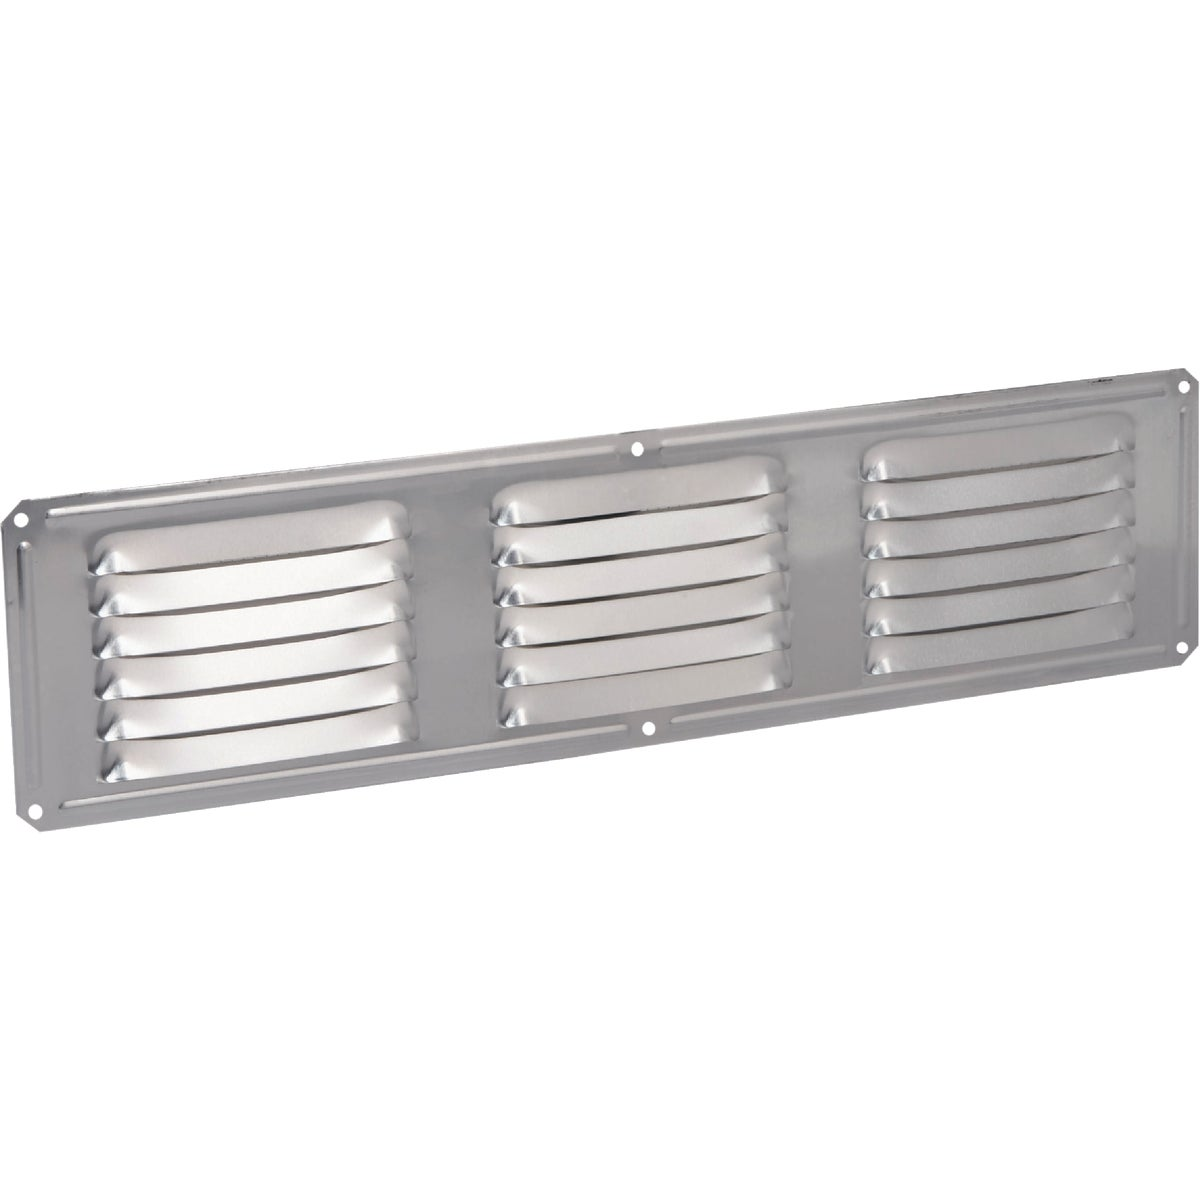 16X4 MIL UNDER EAVE VENT - 84126 by Air Vent Inc